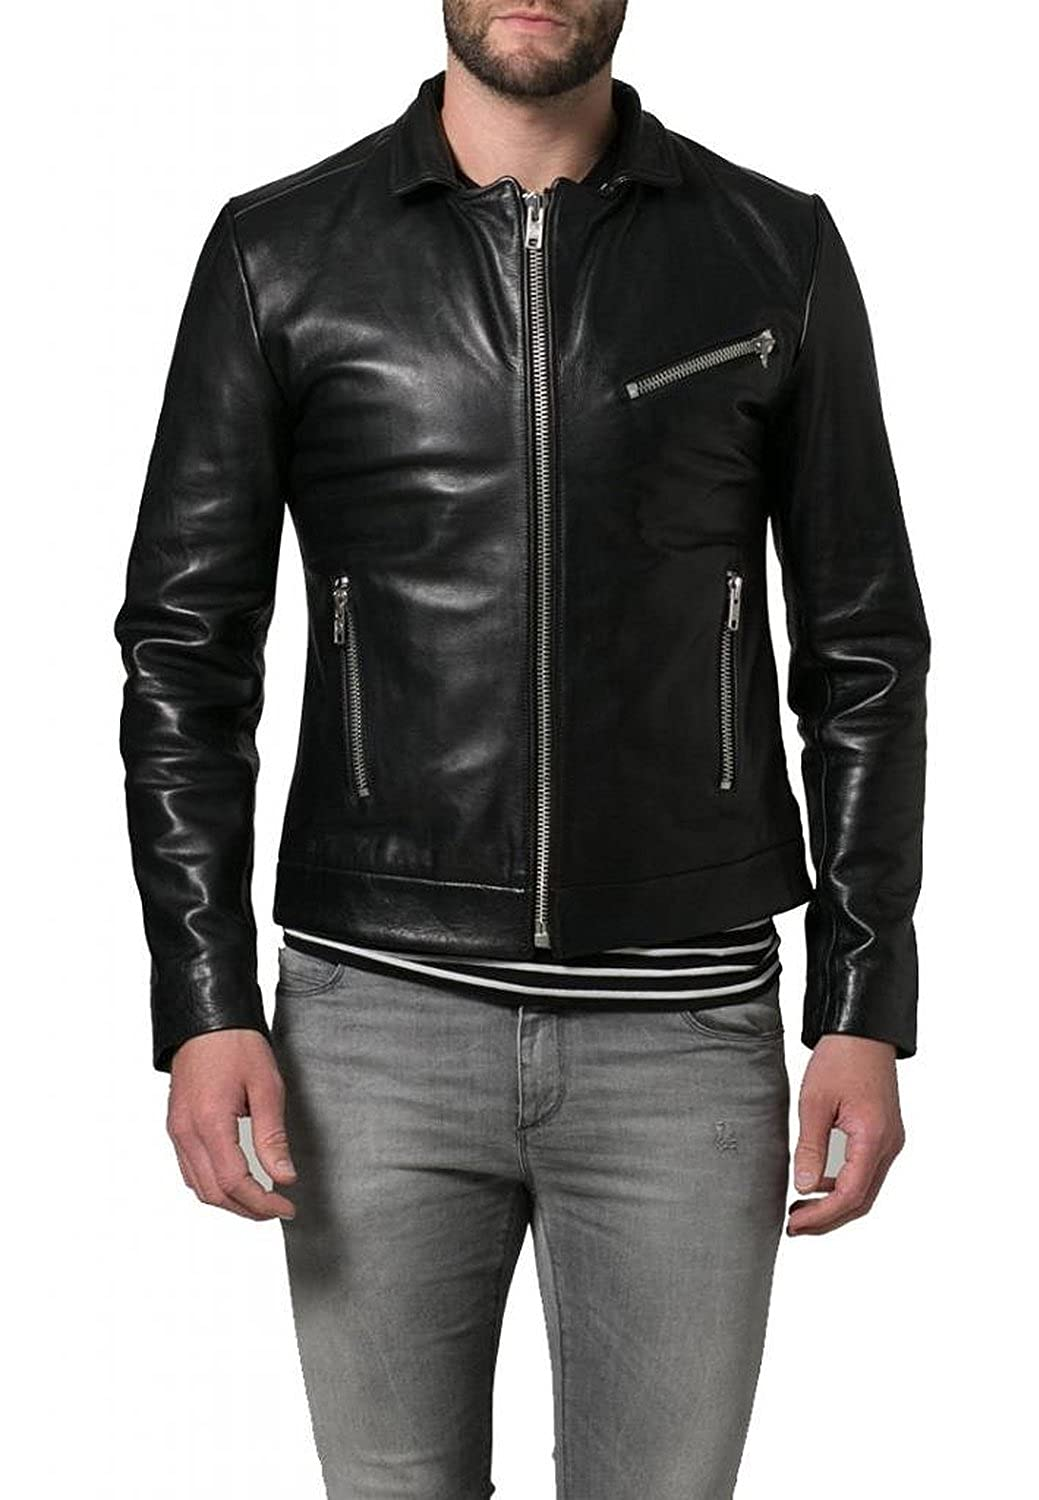 Laverapelle Men's Cow Skin Real Leather jacket Black - 1510559